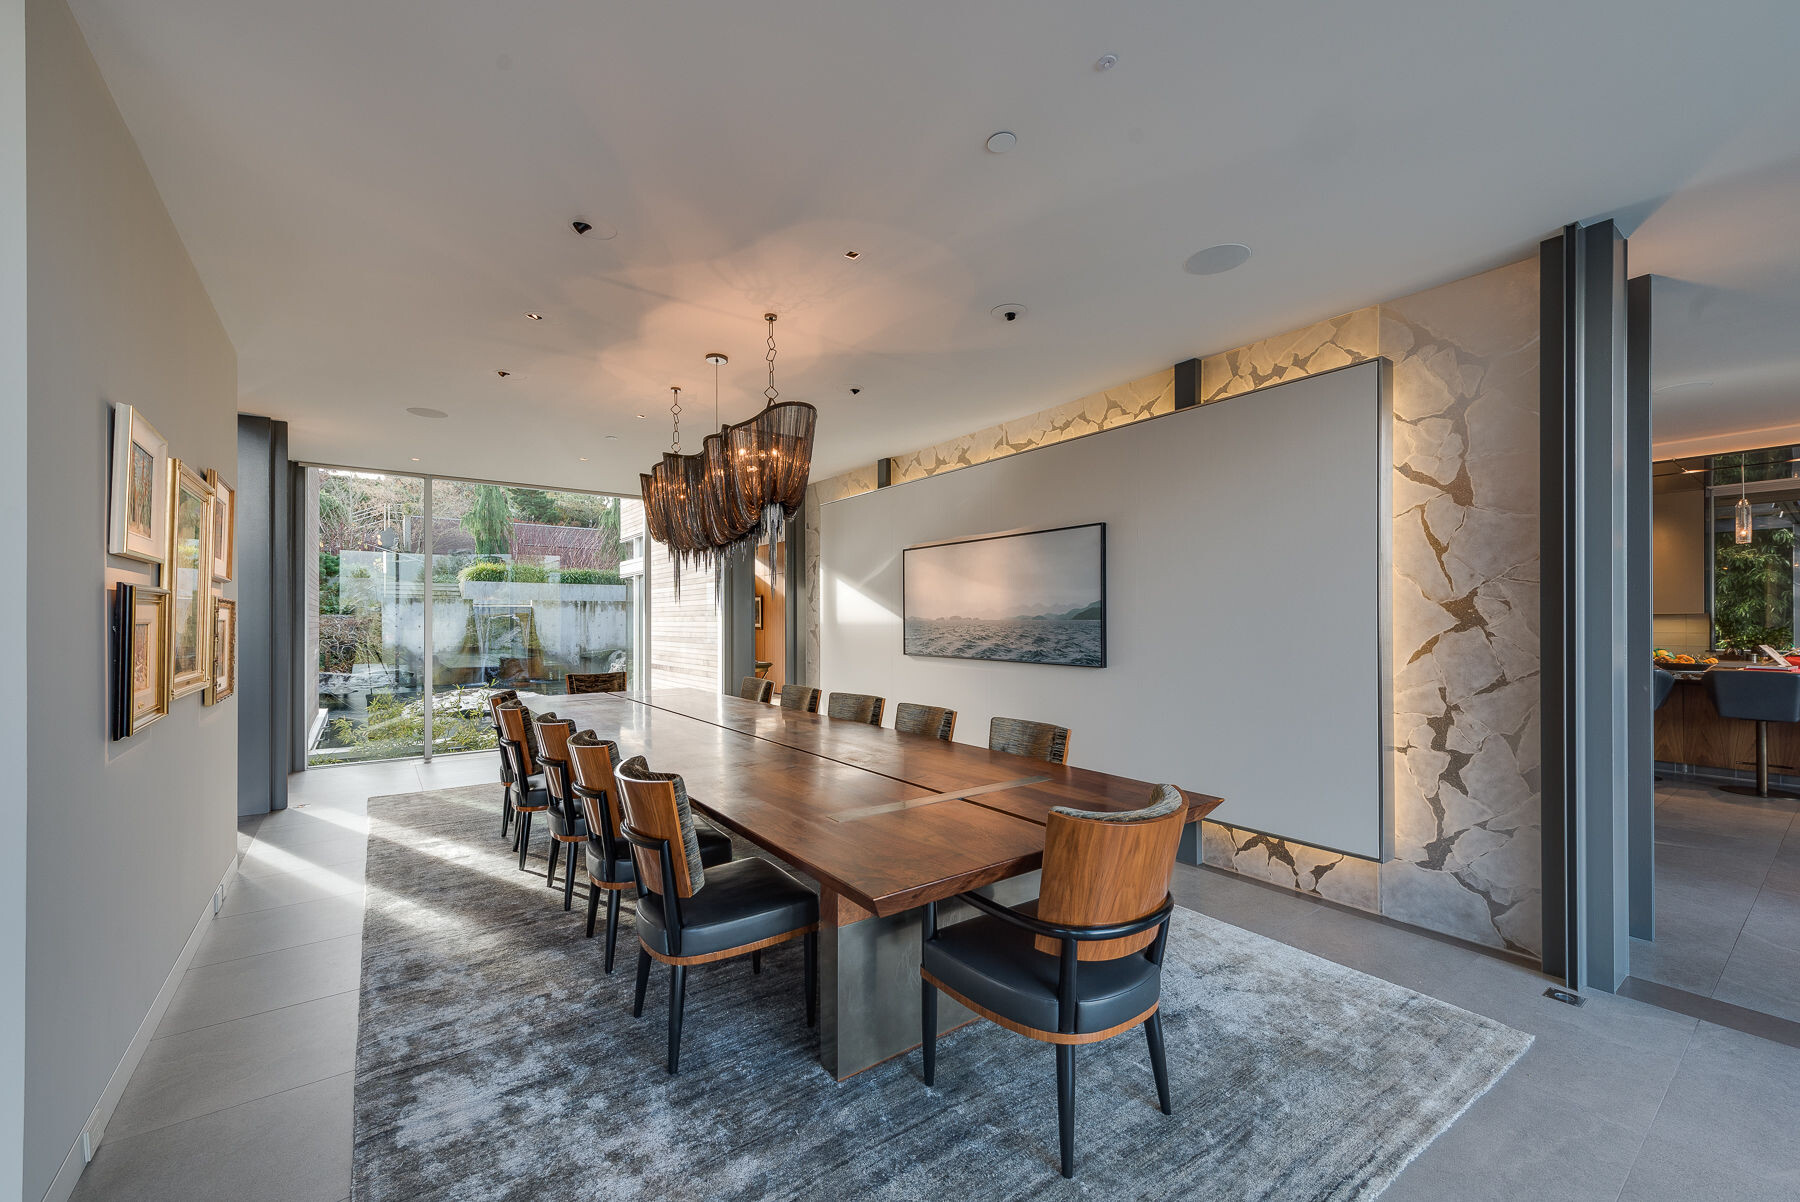 PRIVATE RESIDENCE, VANCOUVER CANADA